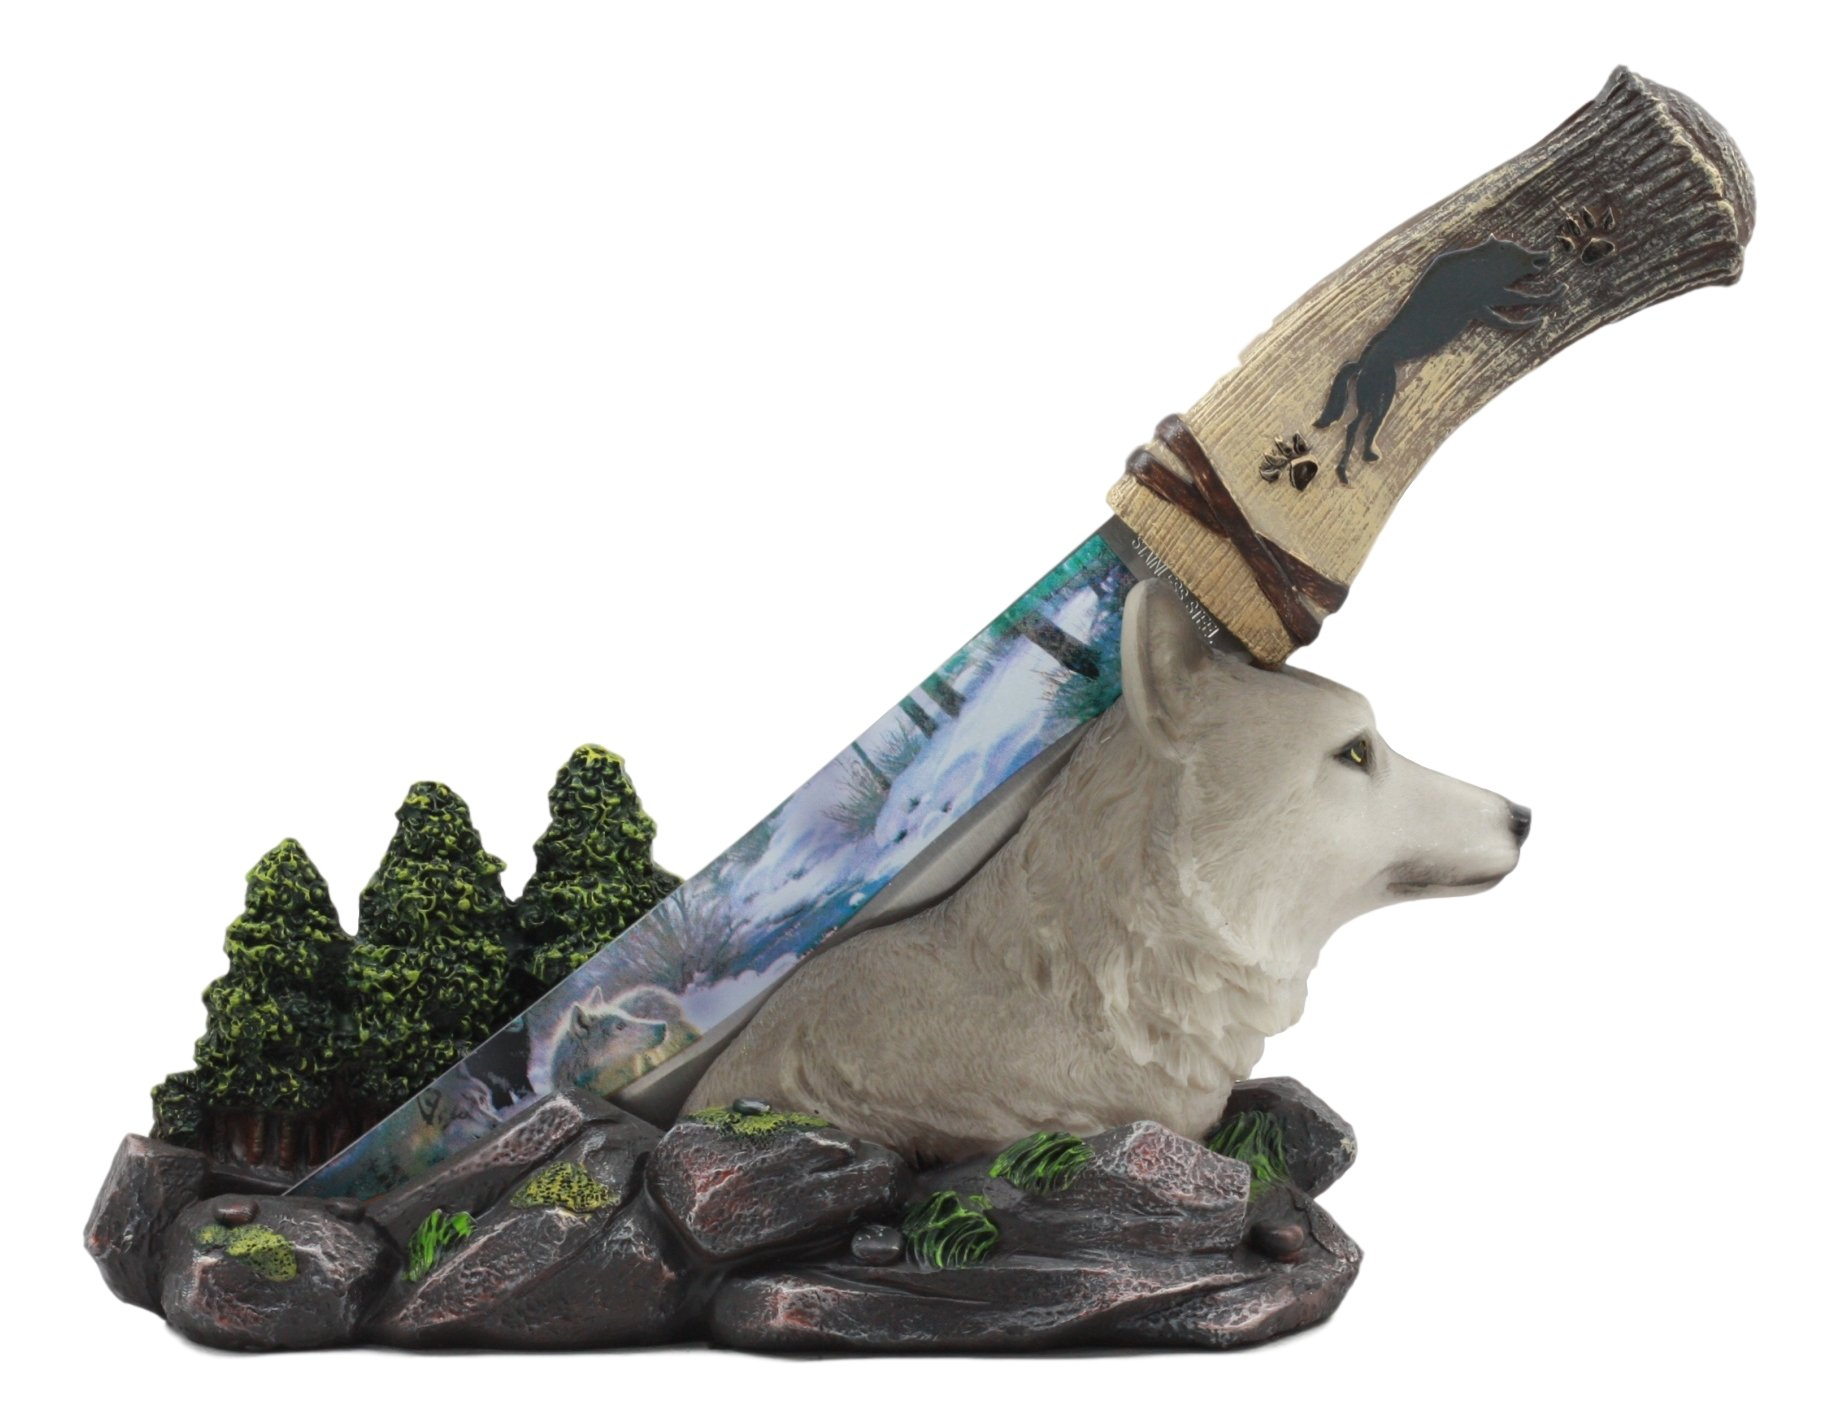 Ebros Animal Spirit Alpha Gray Wolf In Mountain Forest Display Centerpiece Statue With Stainless Steel Blade Dagger Letter Opener Sculpture Figurine Great for Hunters and Outdoorsmen